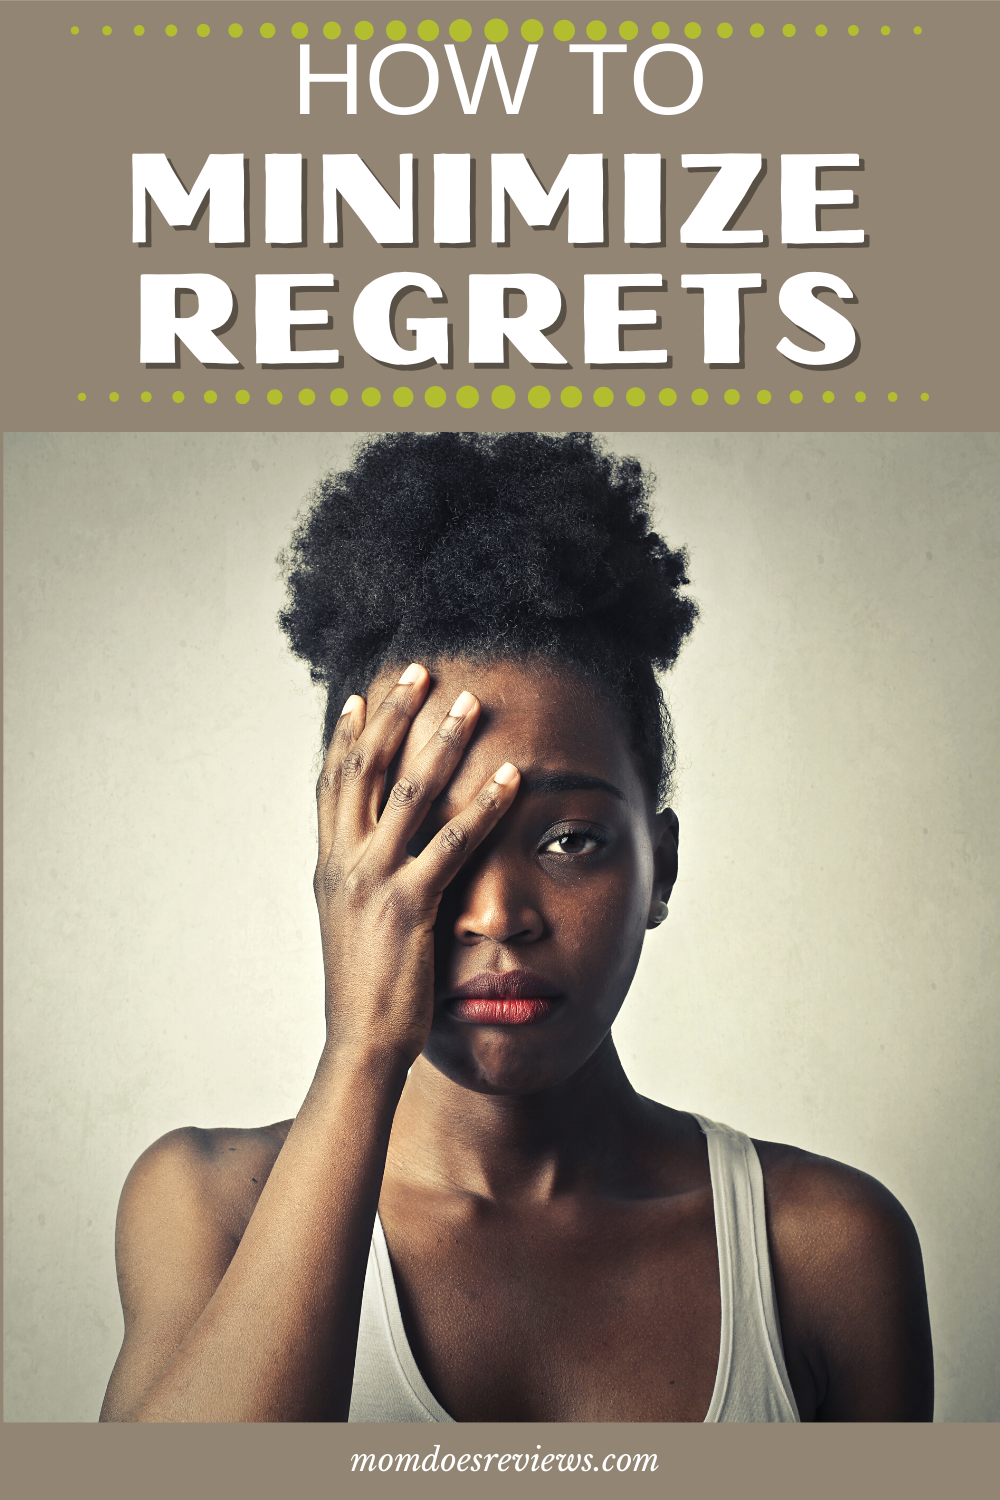 Top Personal Ways You Can Minimize Regrets and Live a Better Life